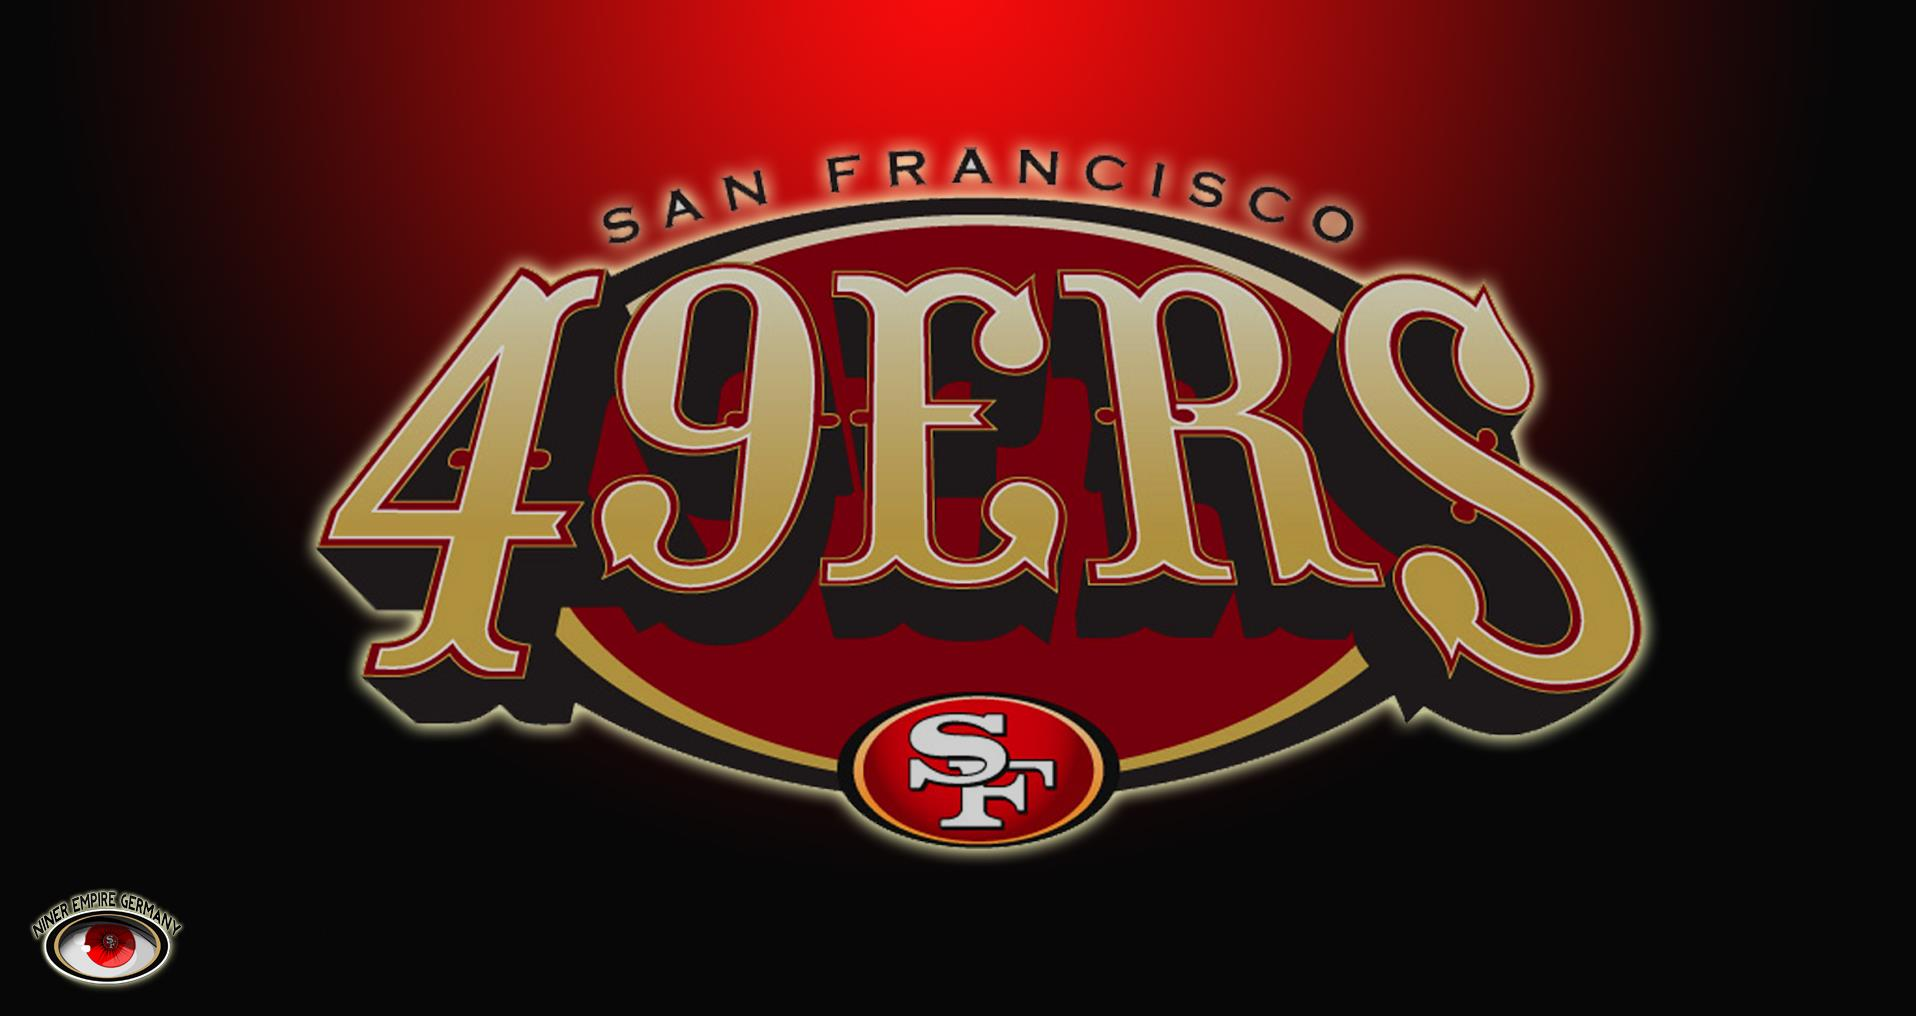 2285f4d3 46+] San Francisco 49ers HD Wallpapers on WallpaperSafari